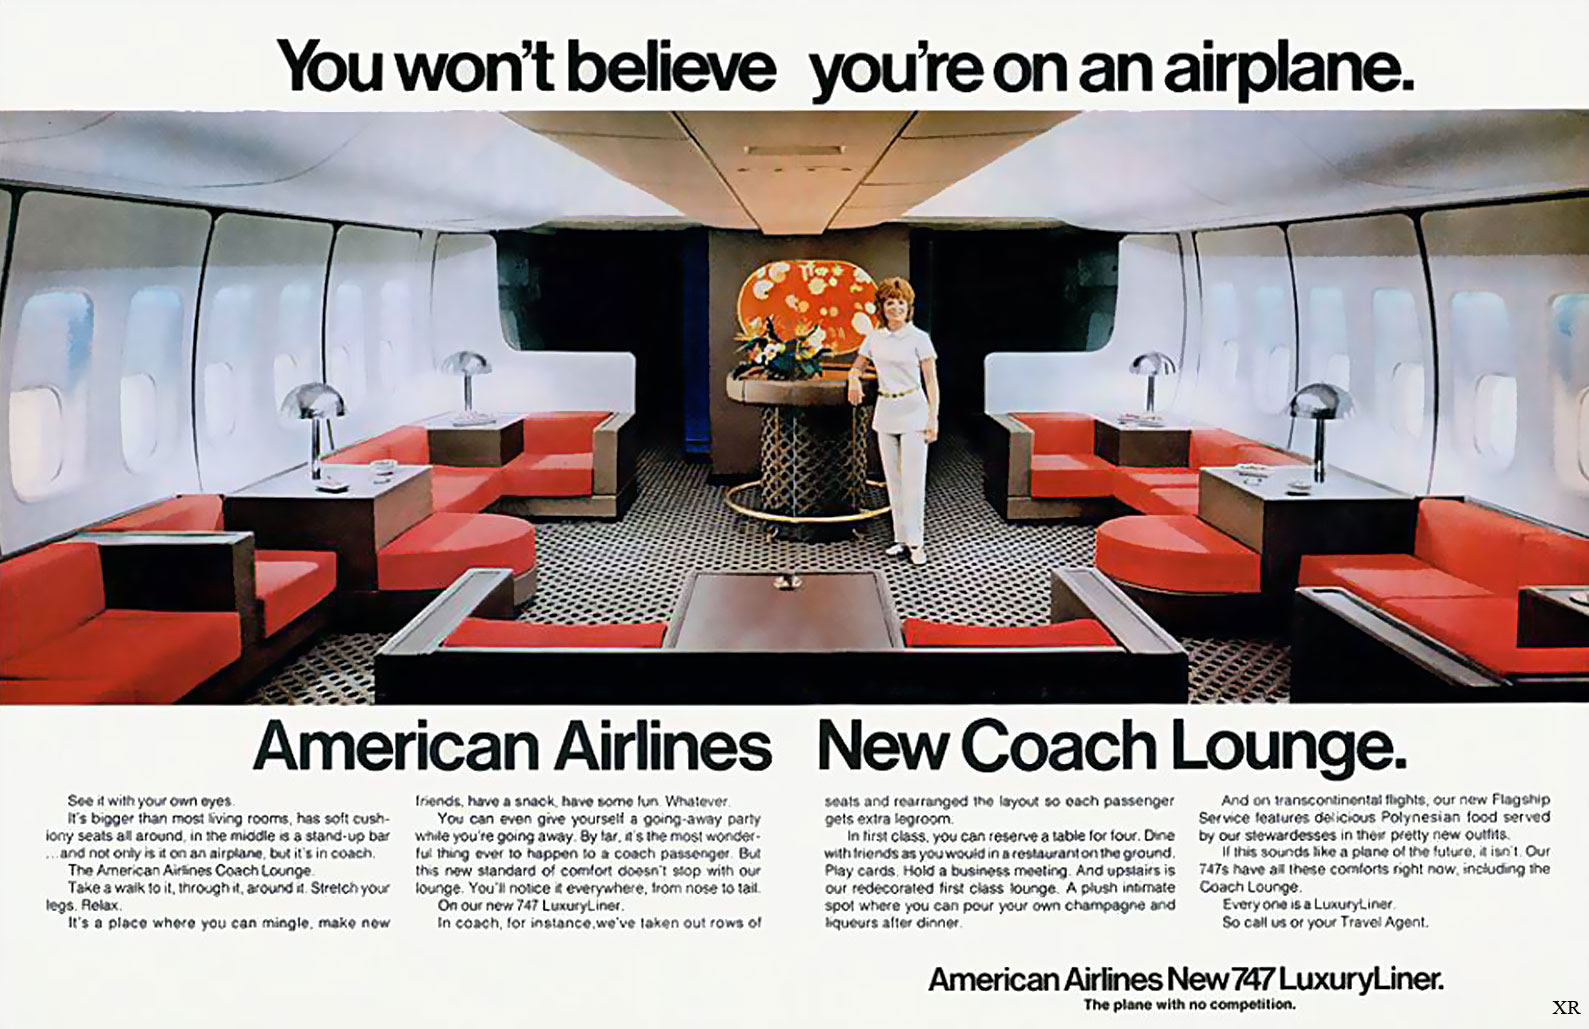 American Airlines New Coach Lounge - Boeing 747